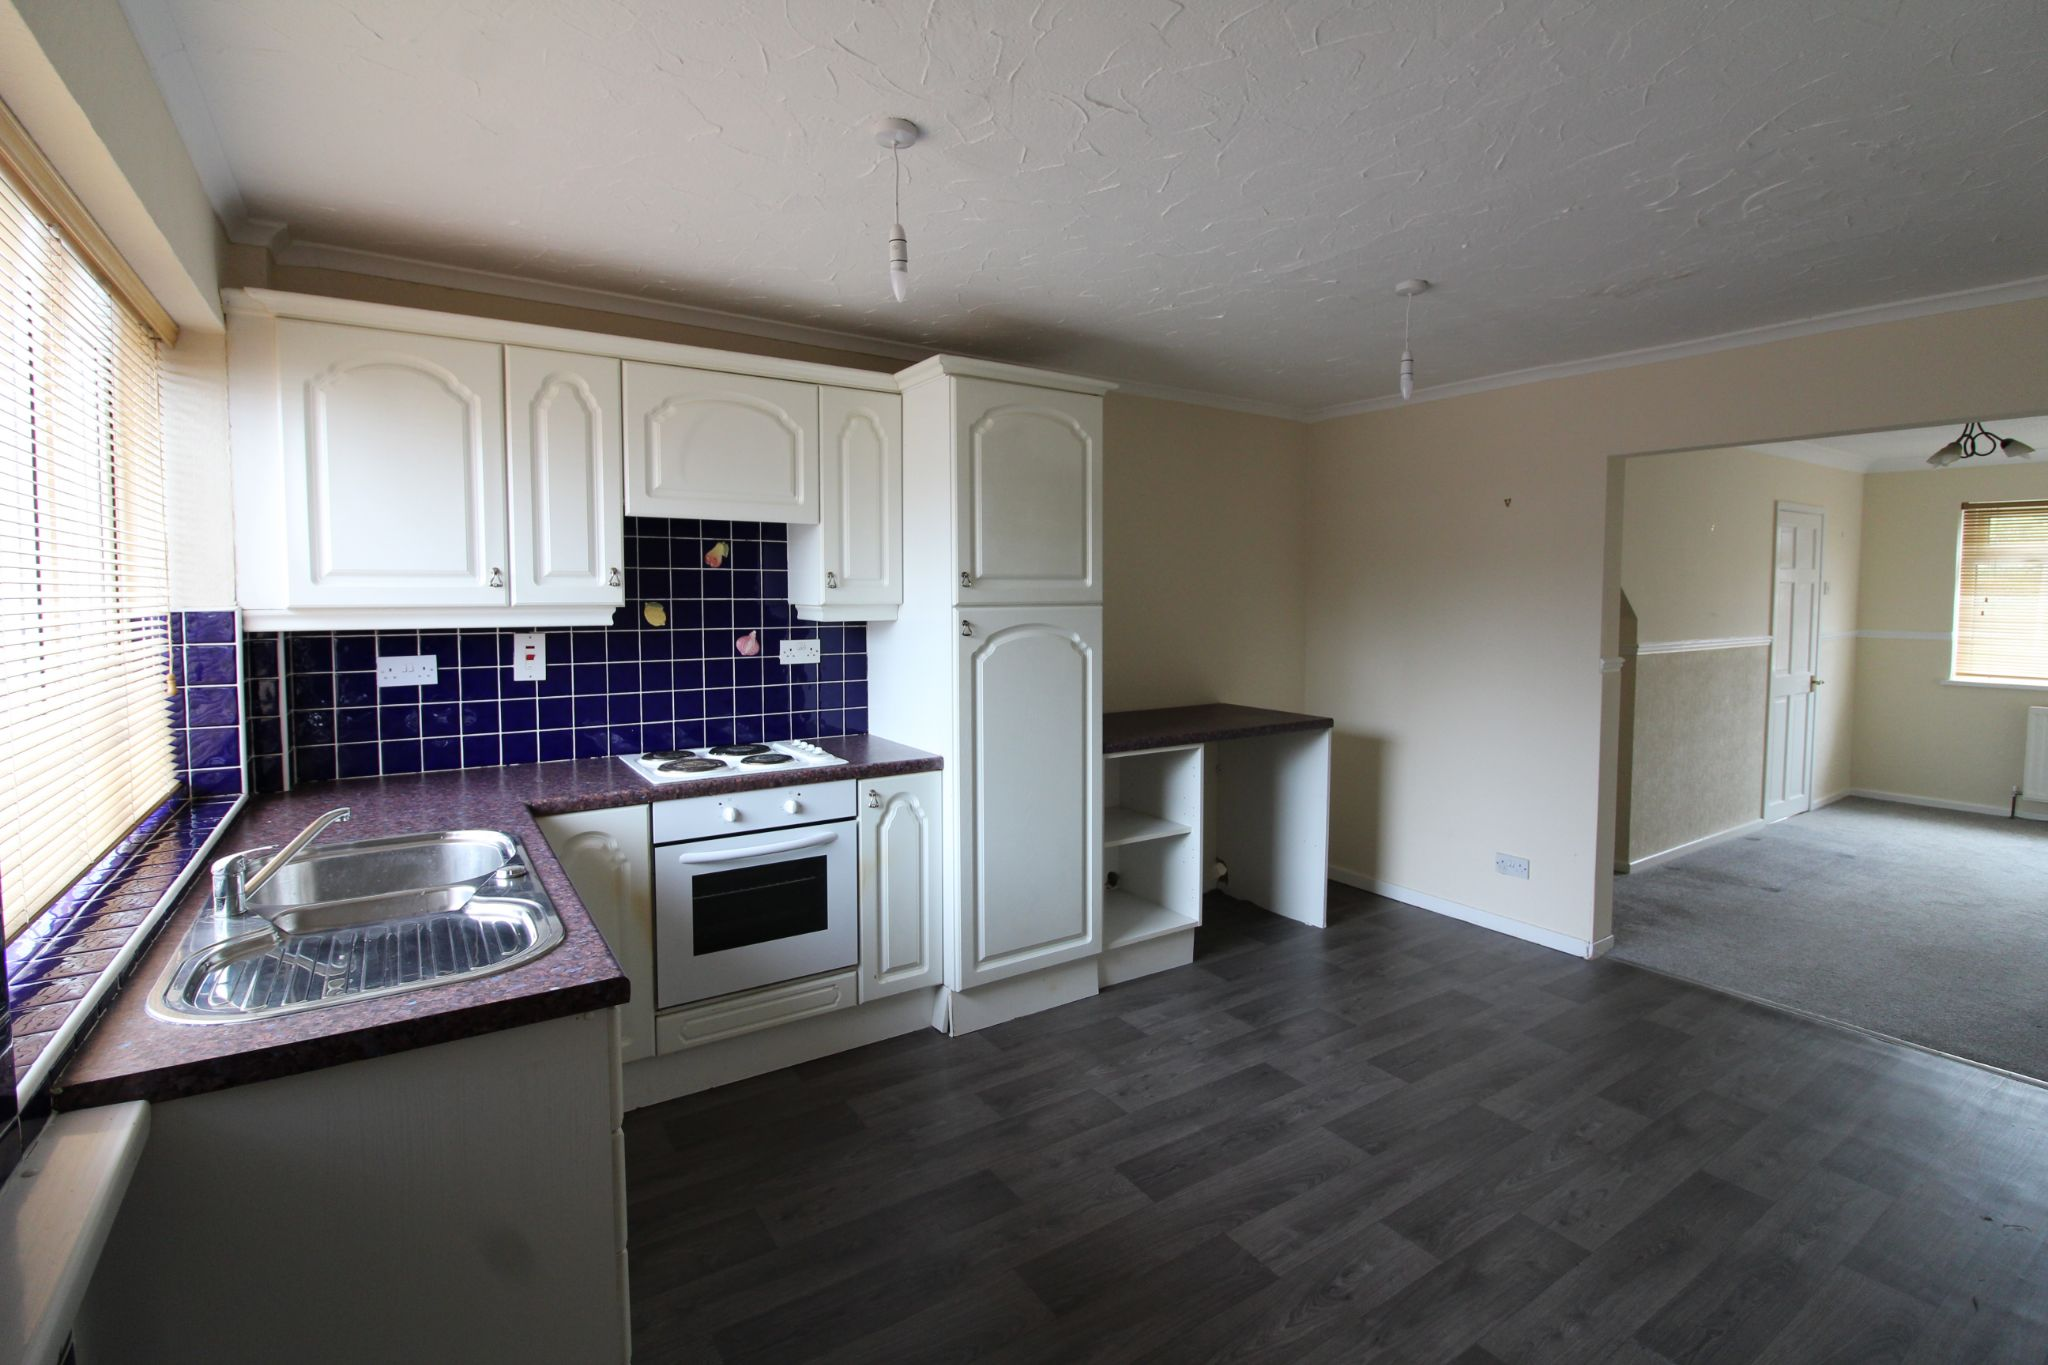 2 bedroom mid terraced house For Sale in Durham - Photograph 4.